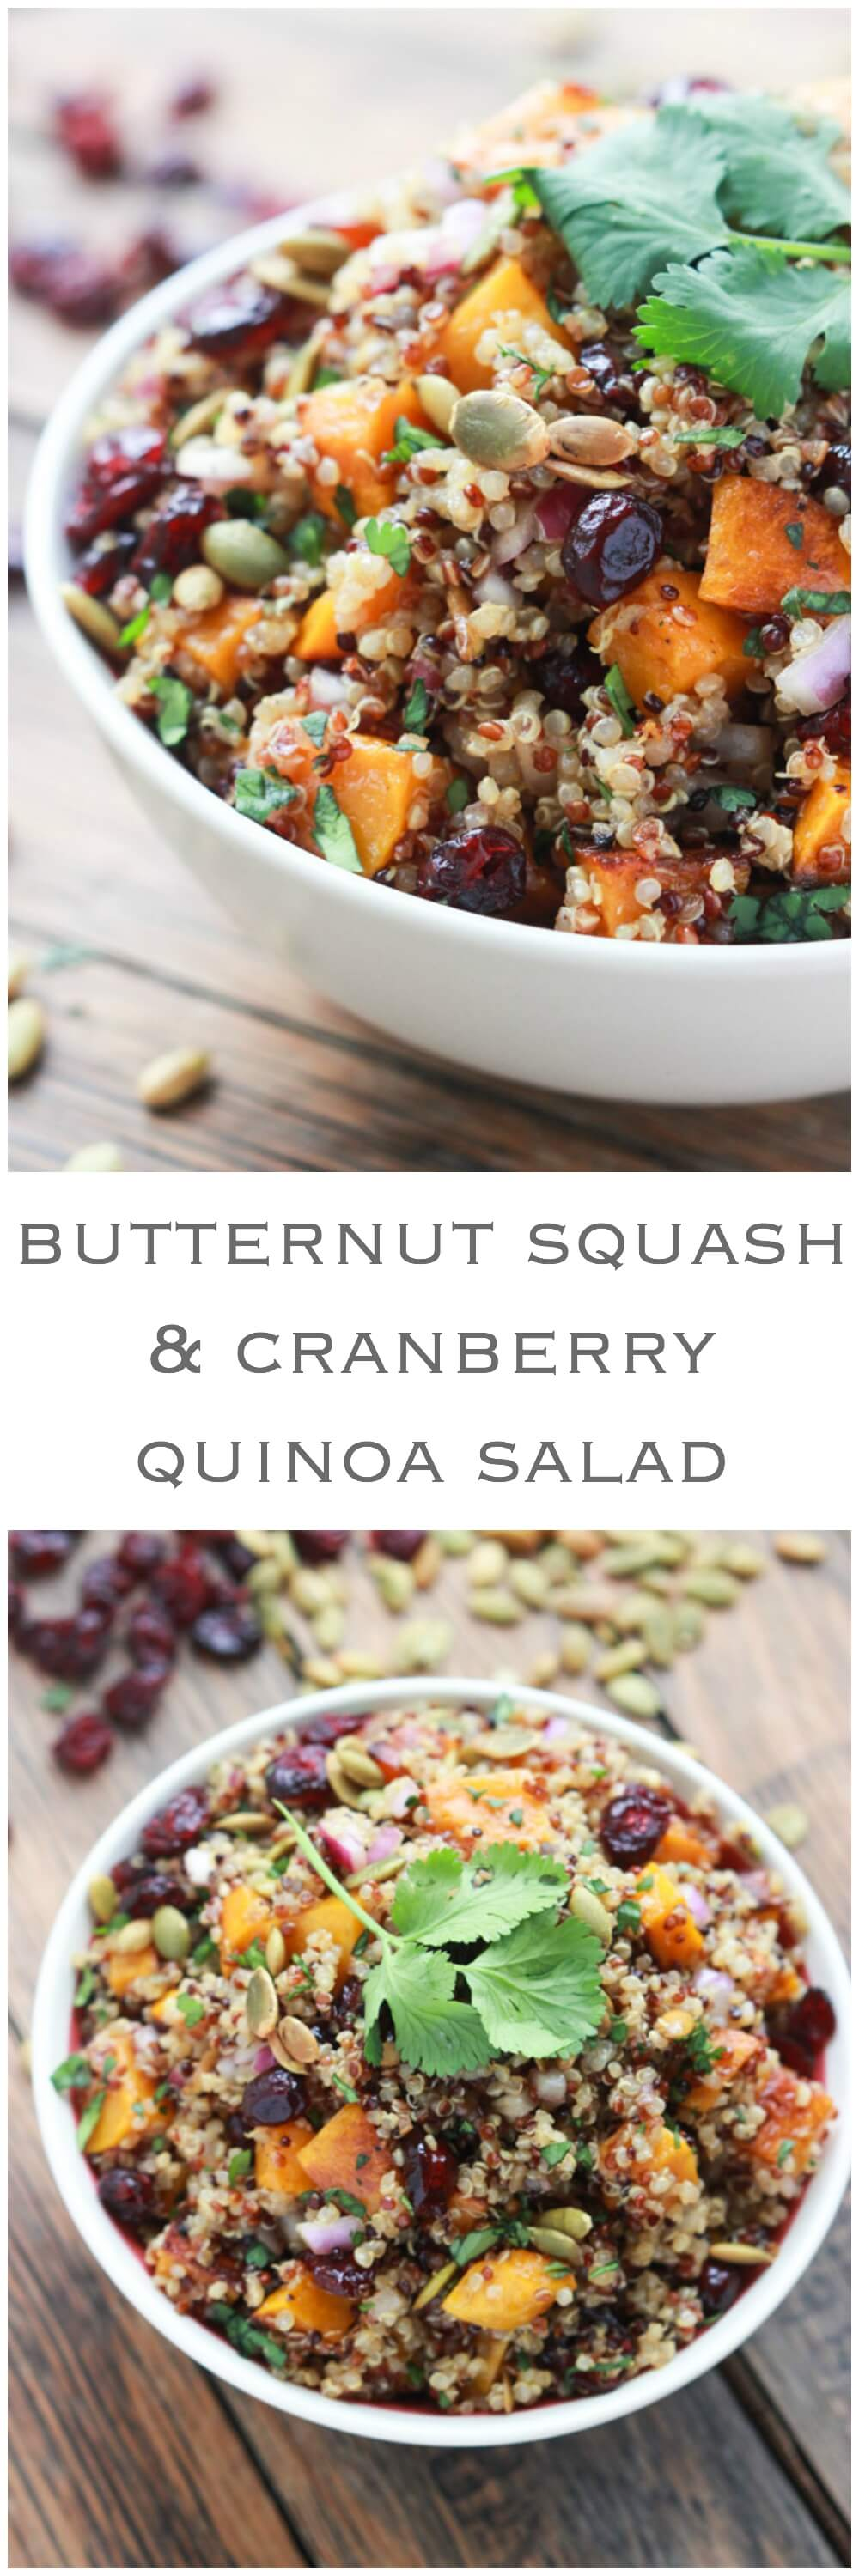 Red Quinoa With Butternut Squash, Cranberries And Pecans Recipes ...